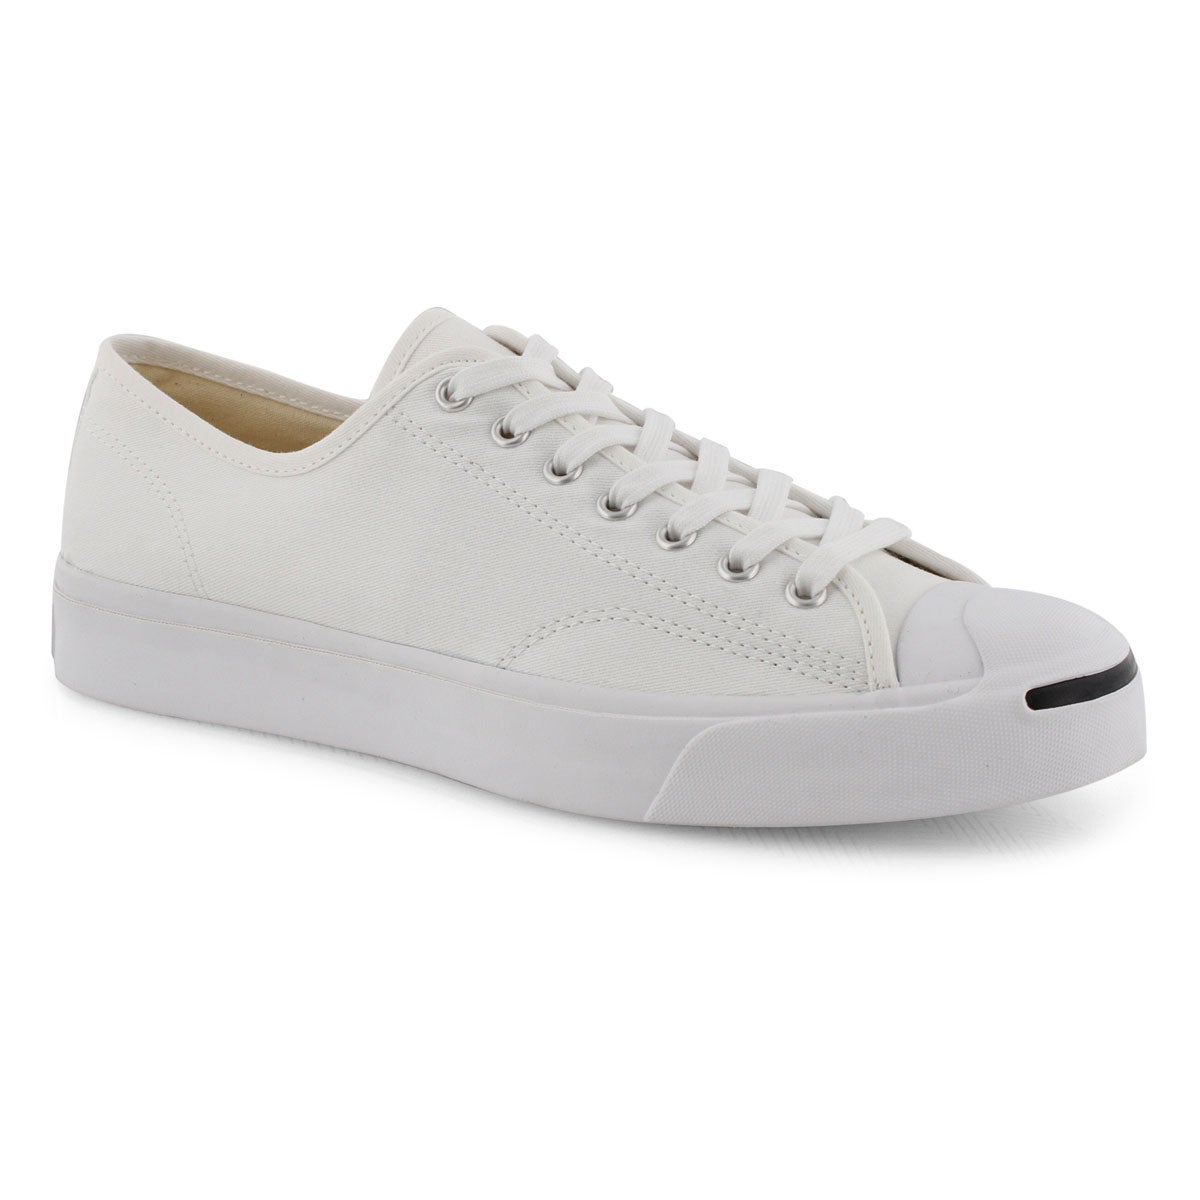 Mns Jack Purcell wht snkr